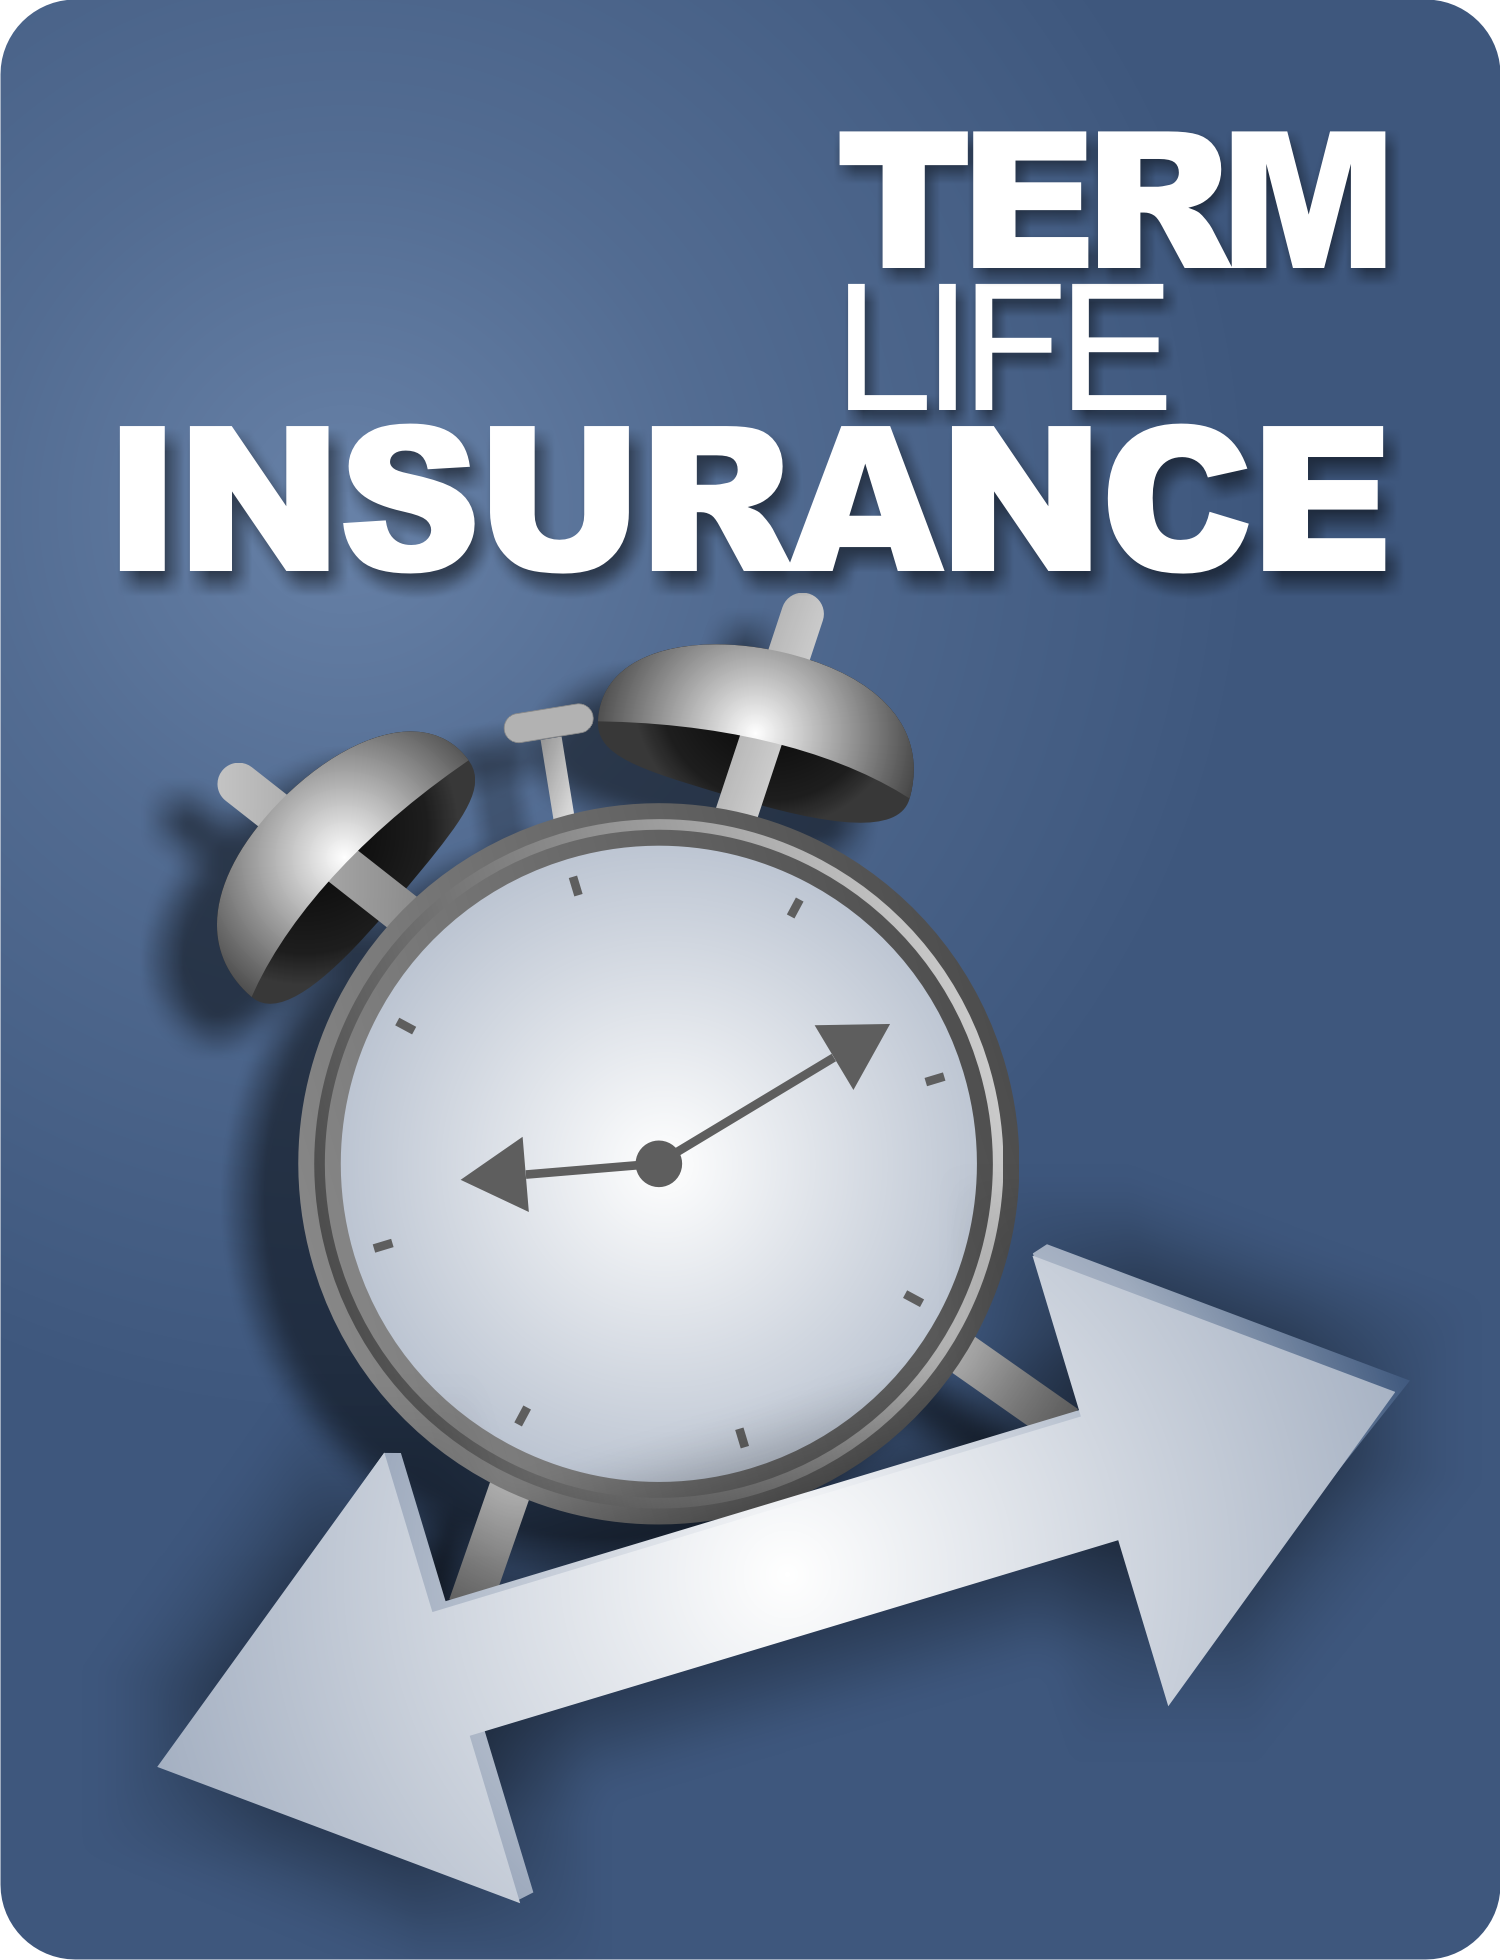 Term Quotes Life Insurance Classy Don't Wait Until It's Too Late Protect Your Family With A Term